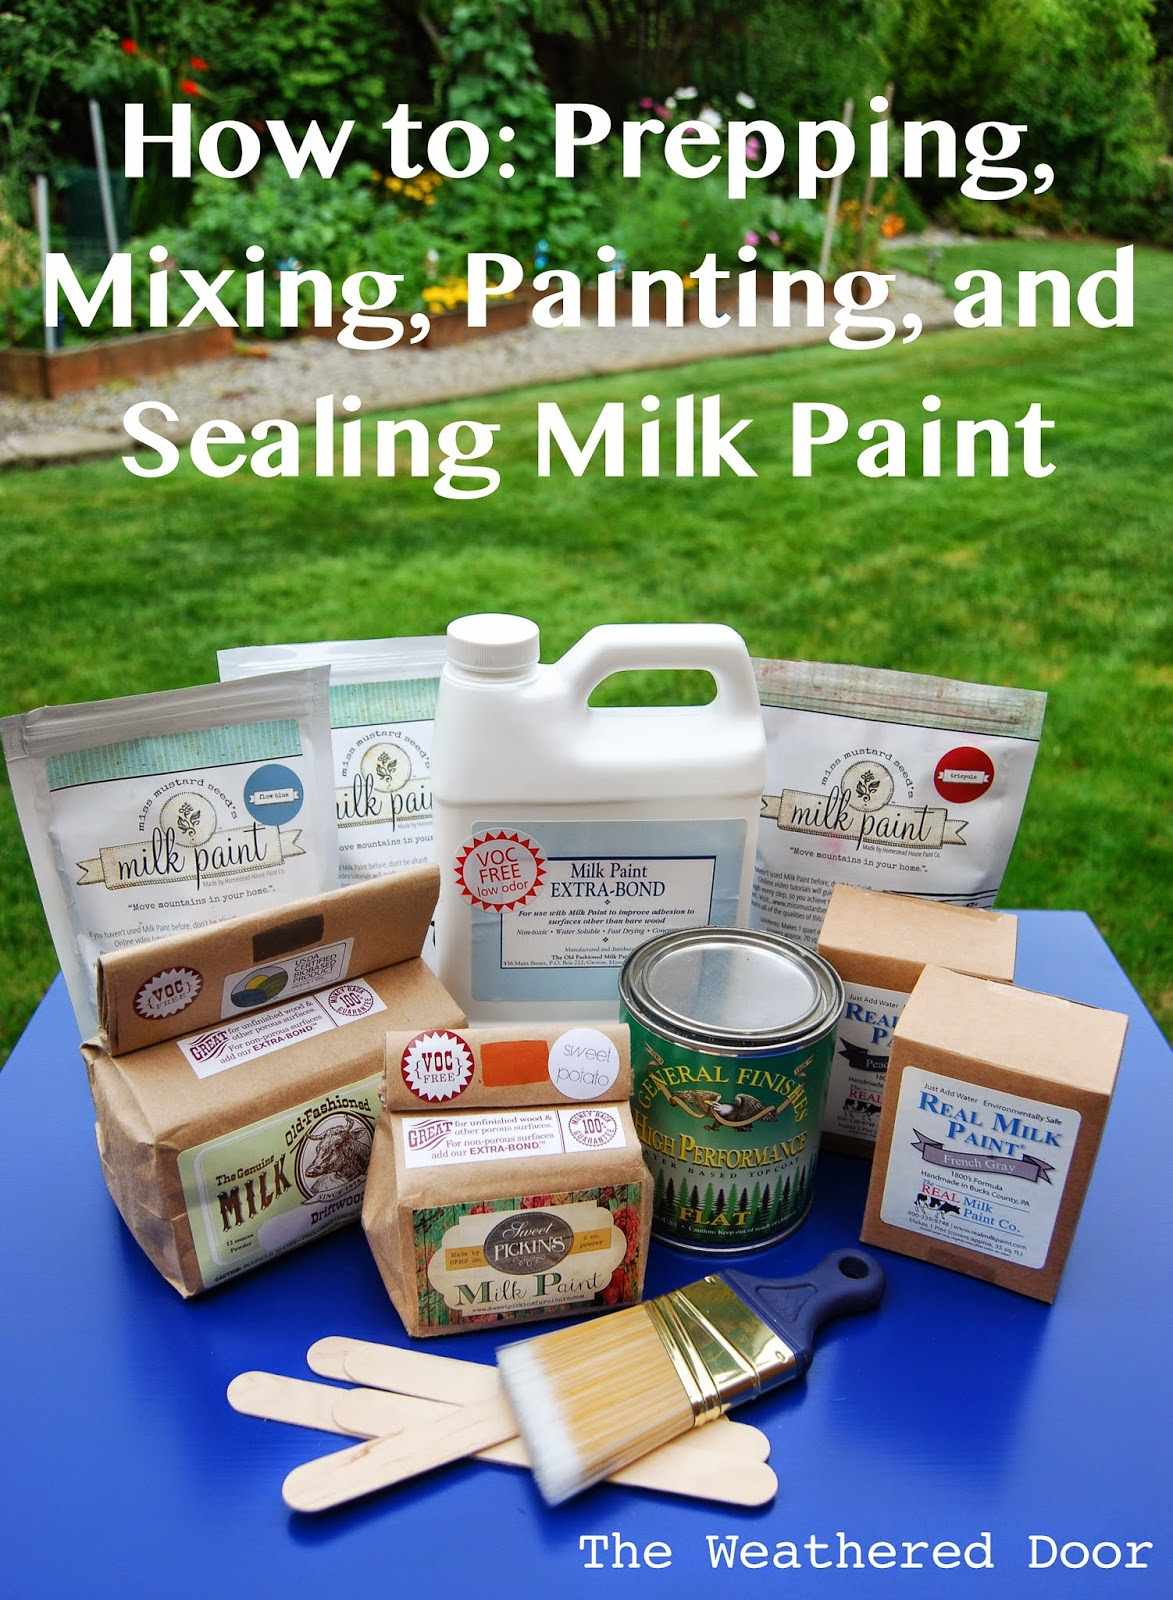 Sealing Old Fashioned Milk Paint